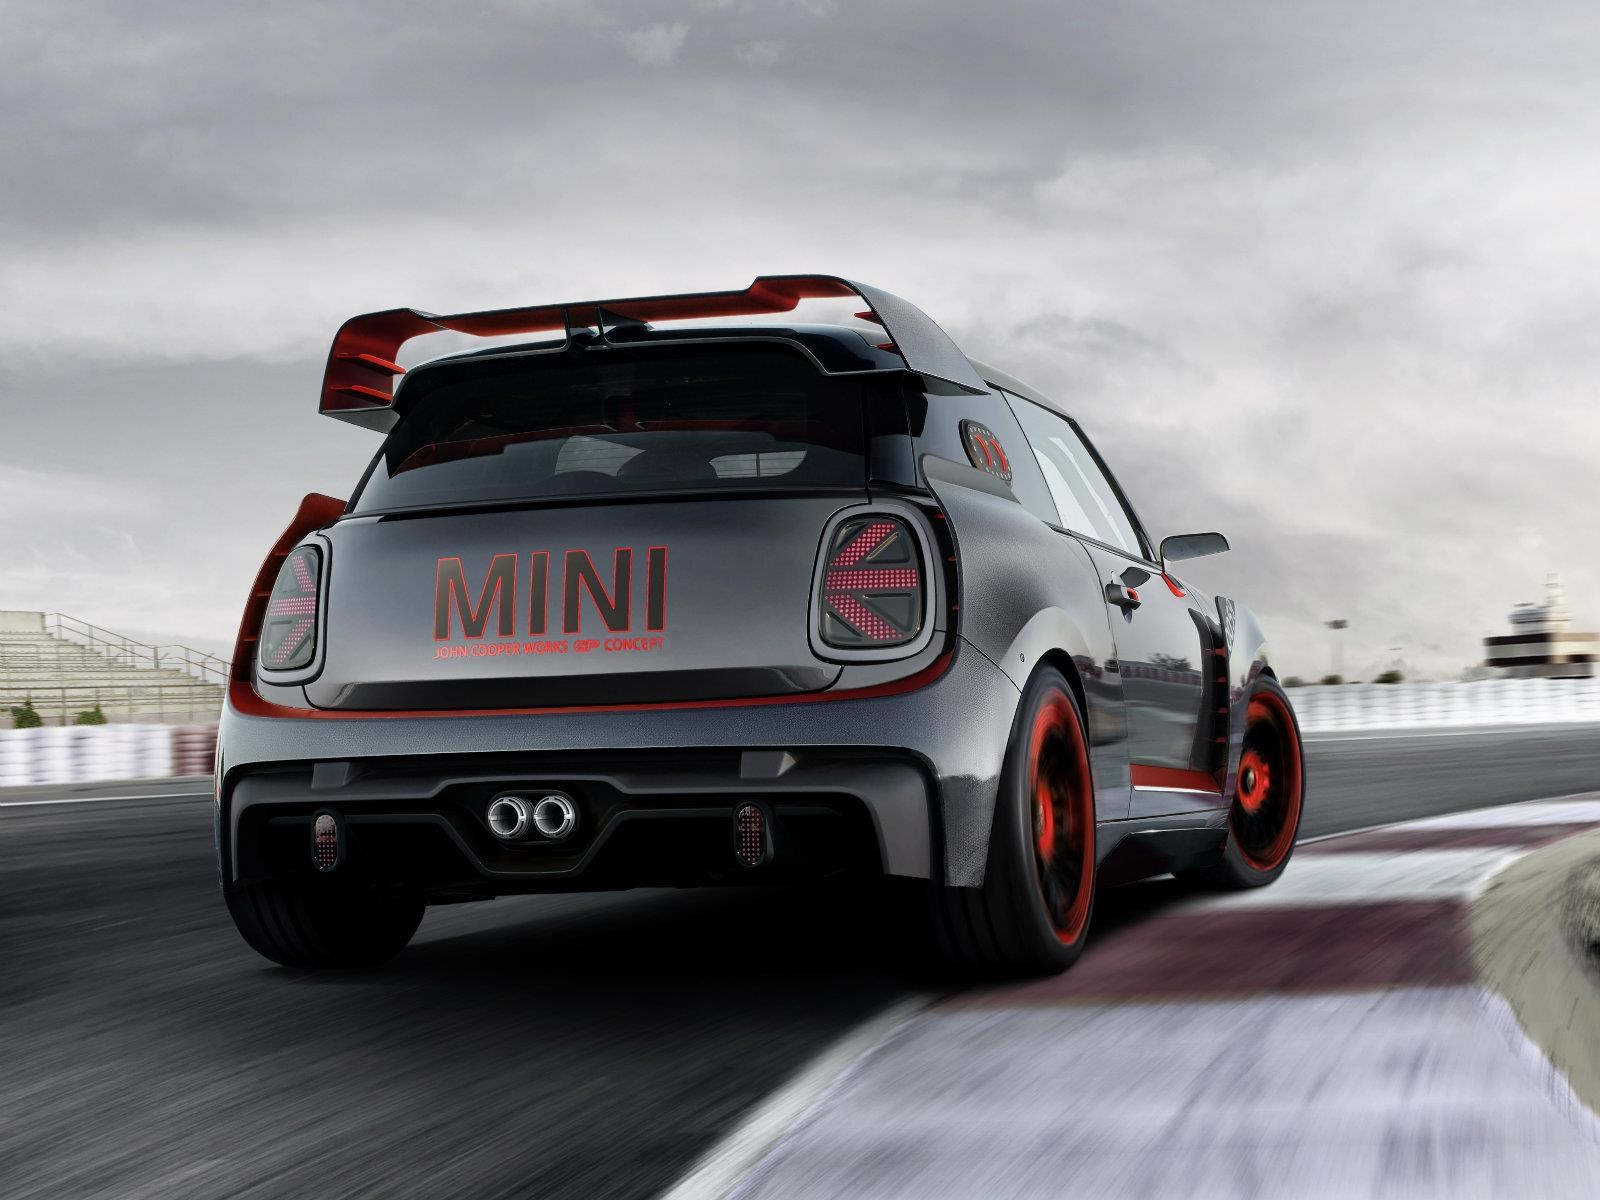 MINI John Cooper Works GP Concept, exquisito prototipo